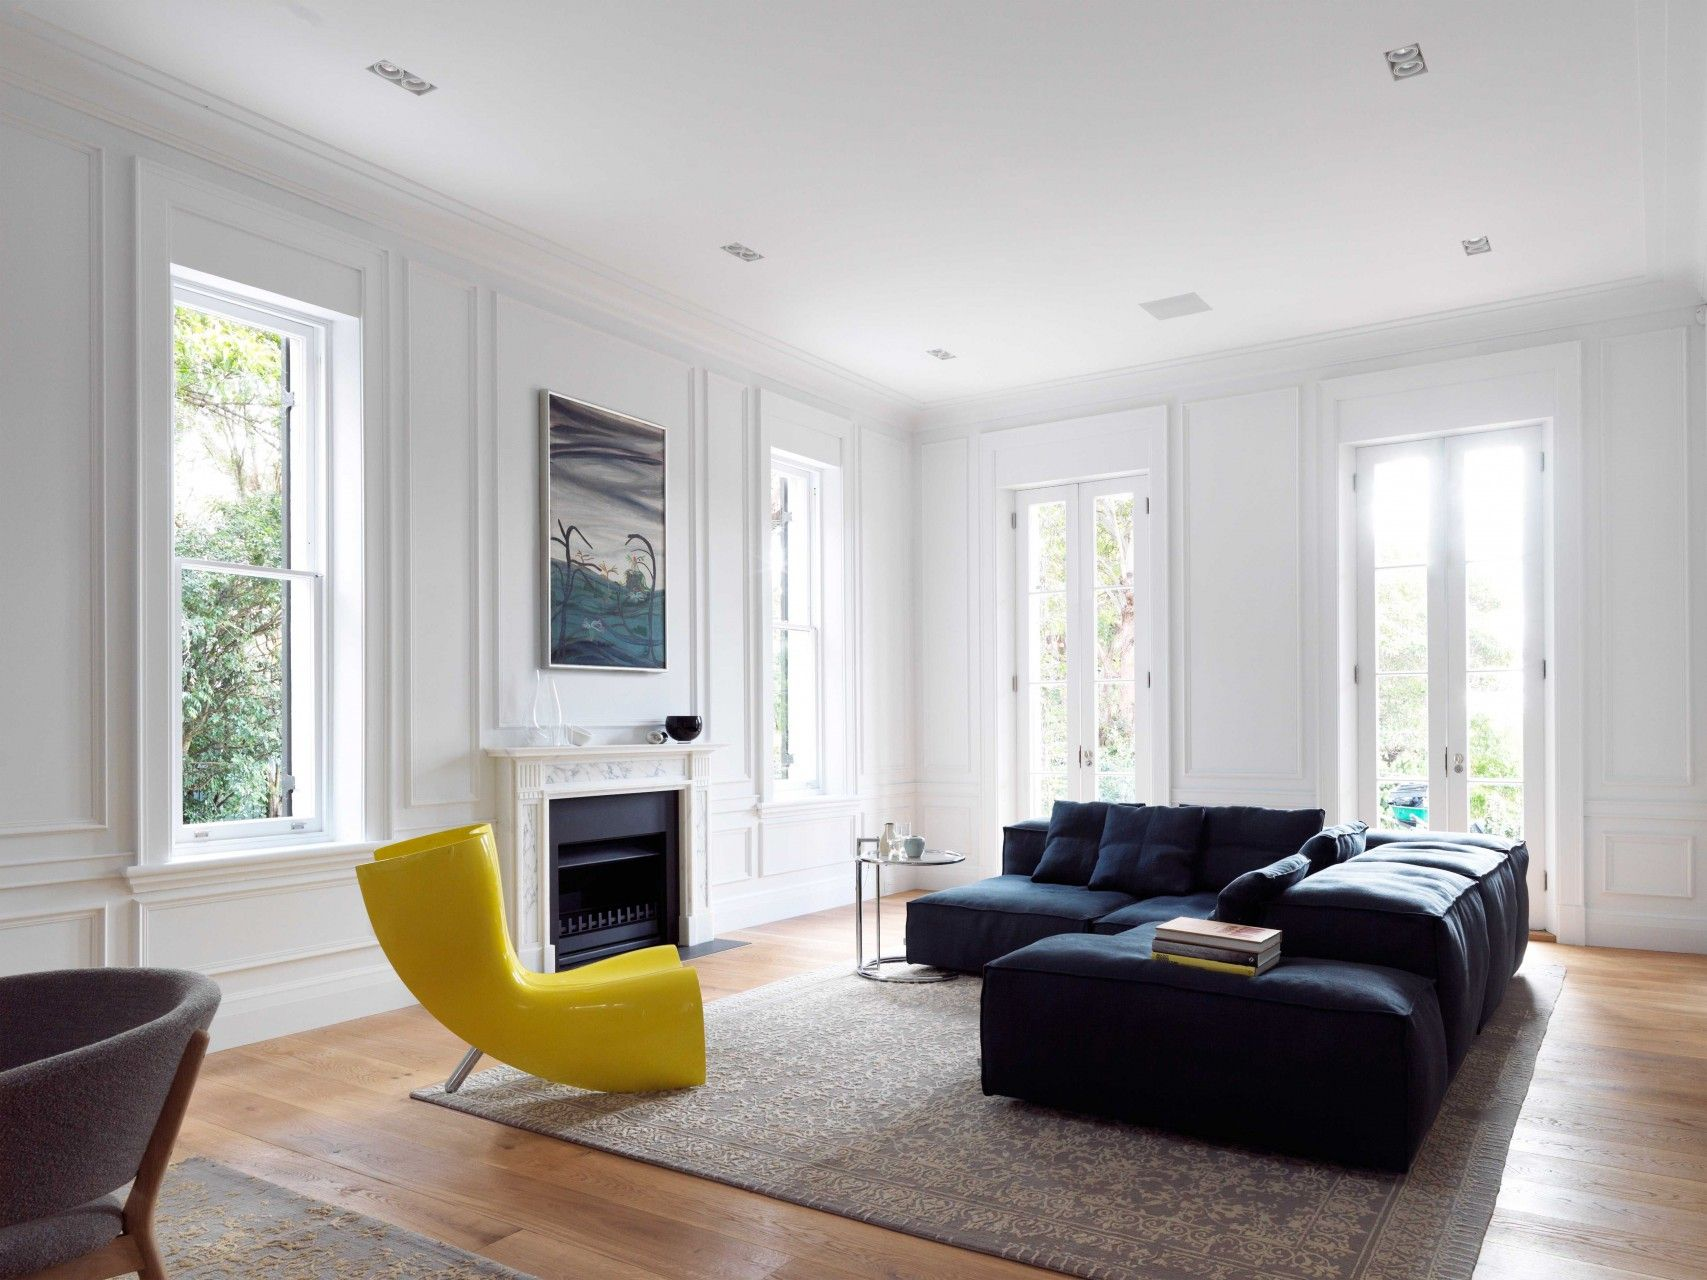 Minimalist Victorian Home | Contemporary furniture, Victorian ...